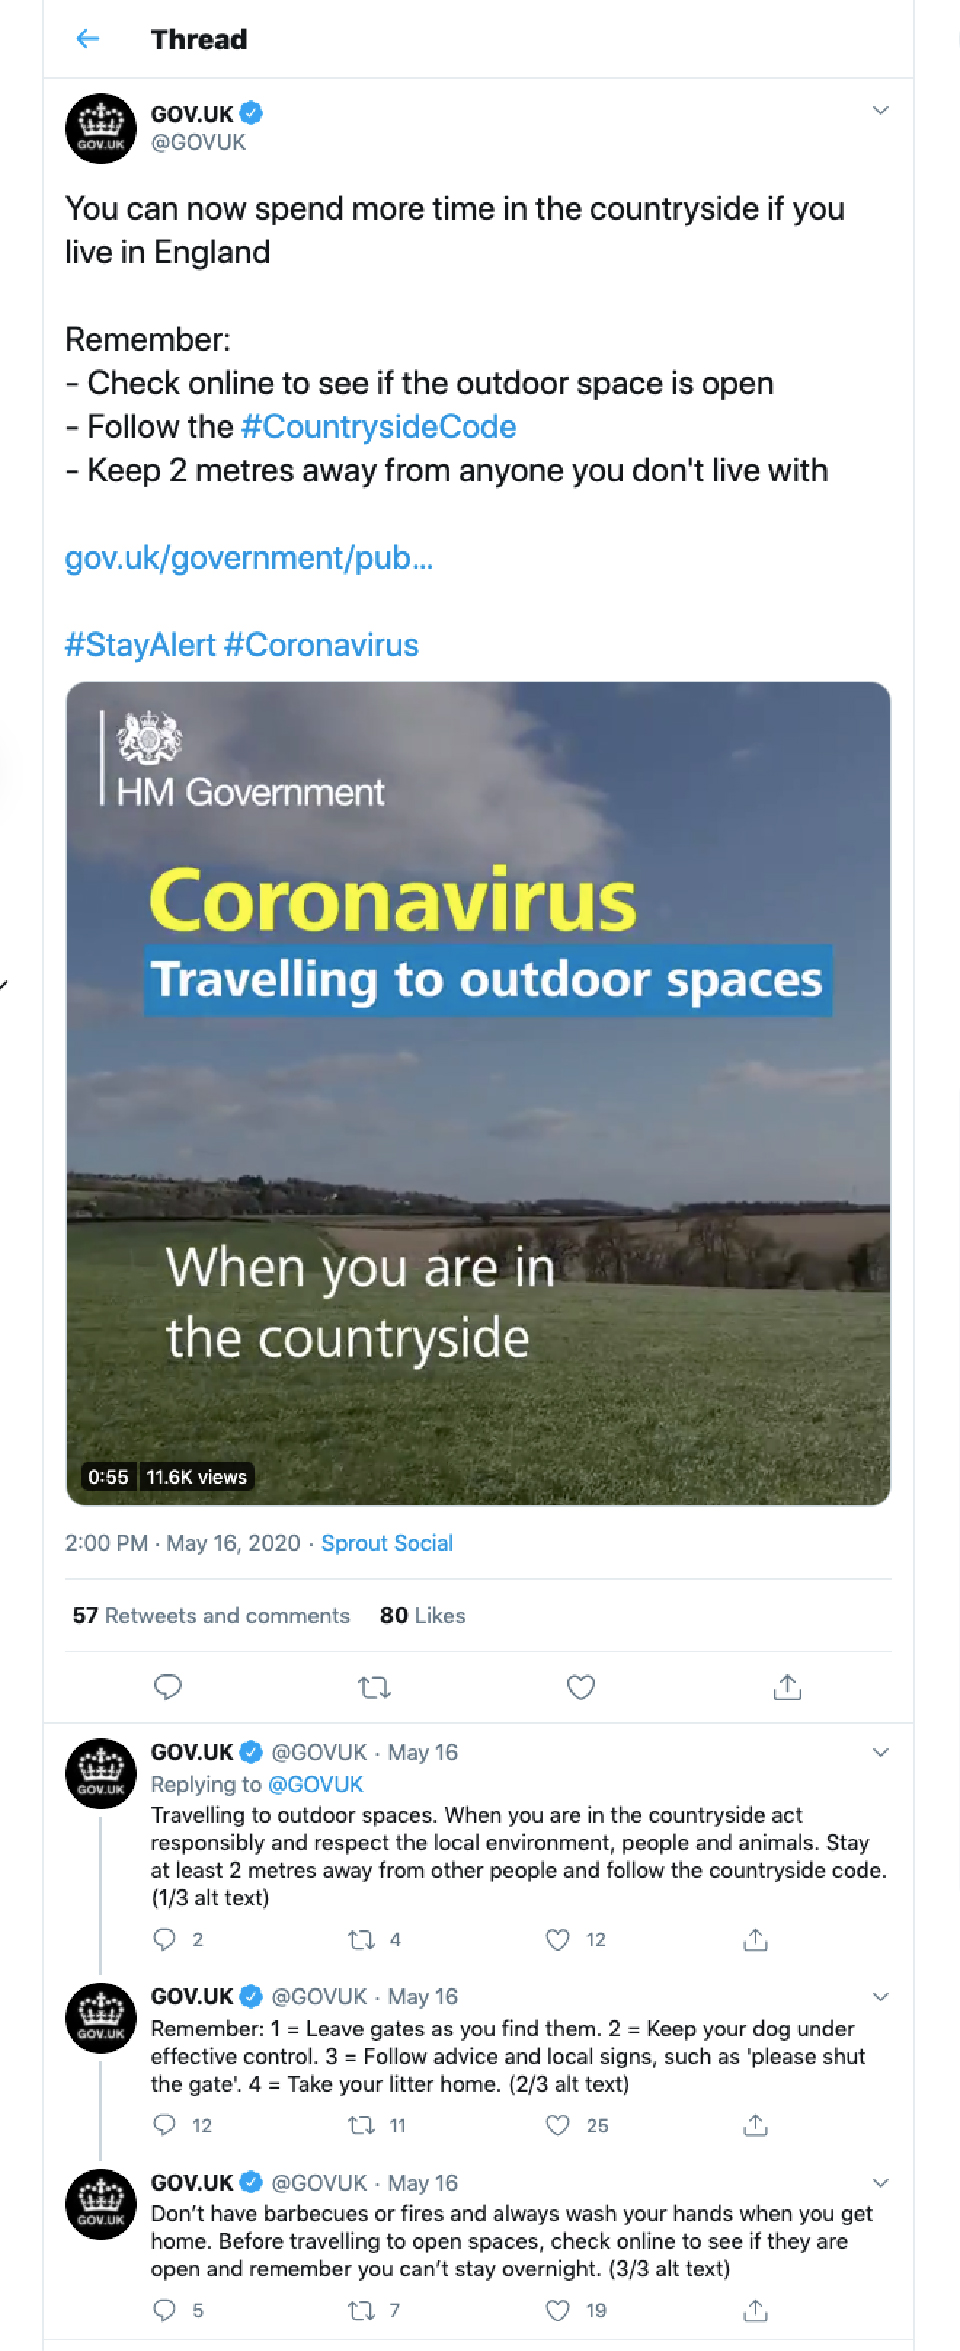 Twitter feed of the GOV.UK feed about COVID-19